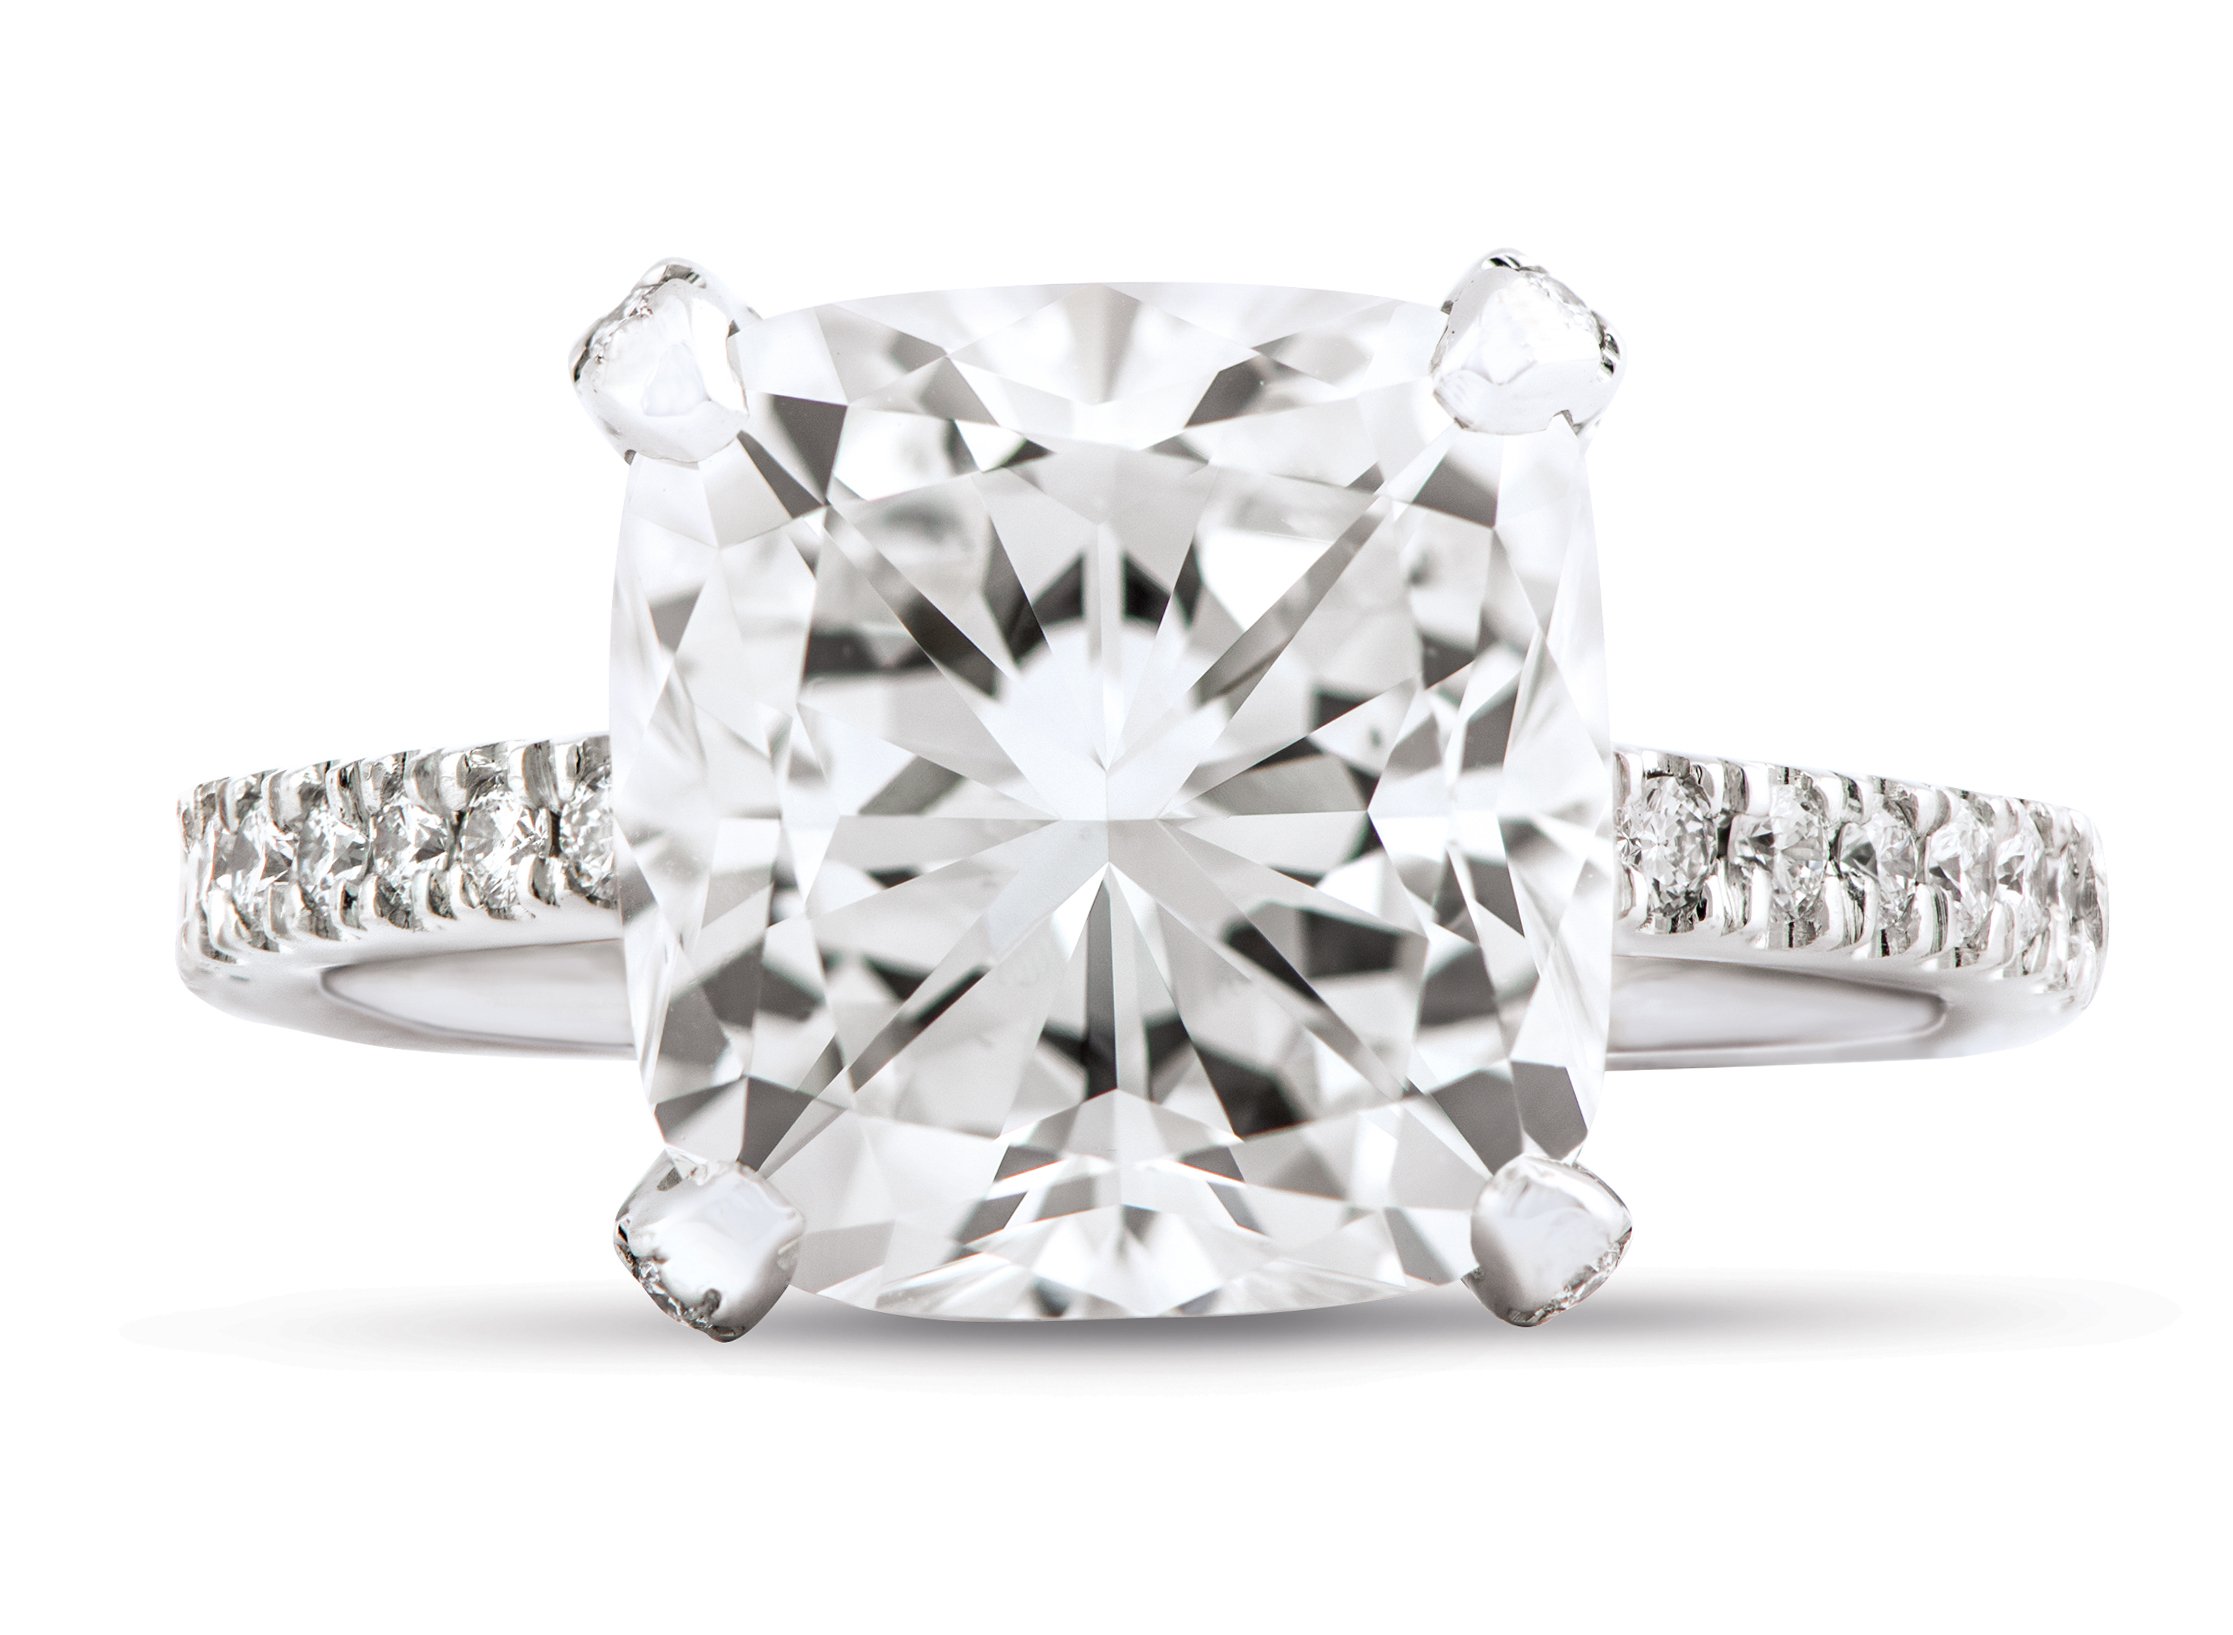 white conflict zircon diamond il sterling rings order substitute size made wedding free your fullxfull heavy listing ring rectangular in band silver to